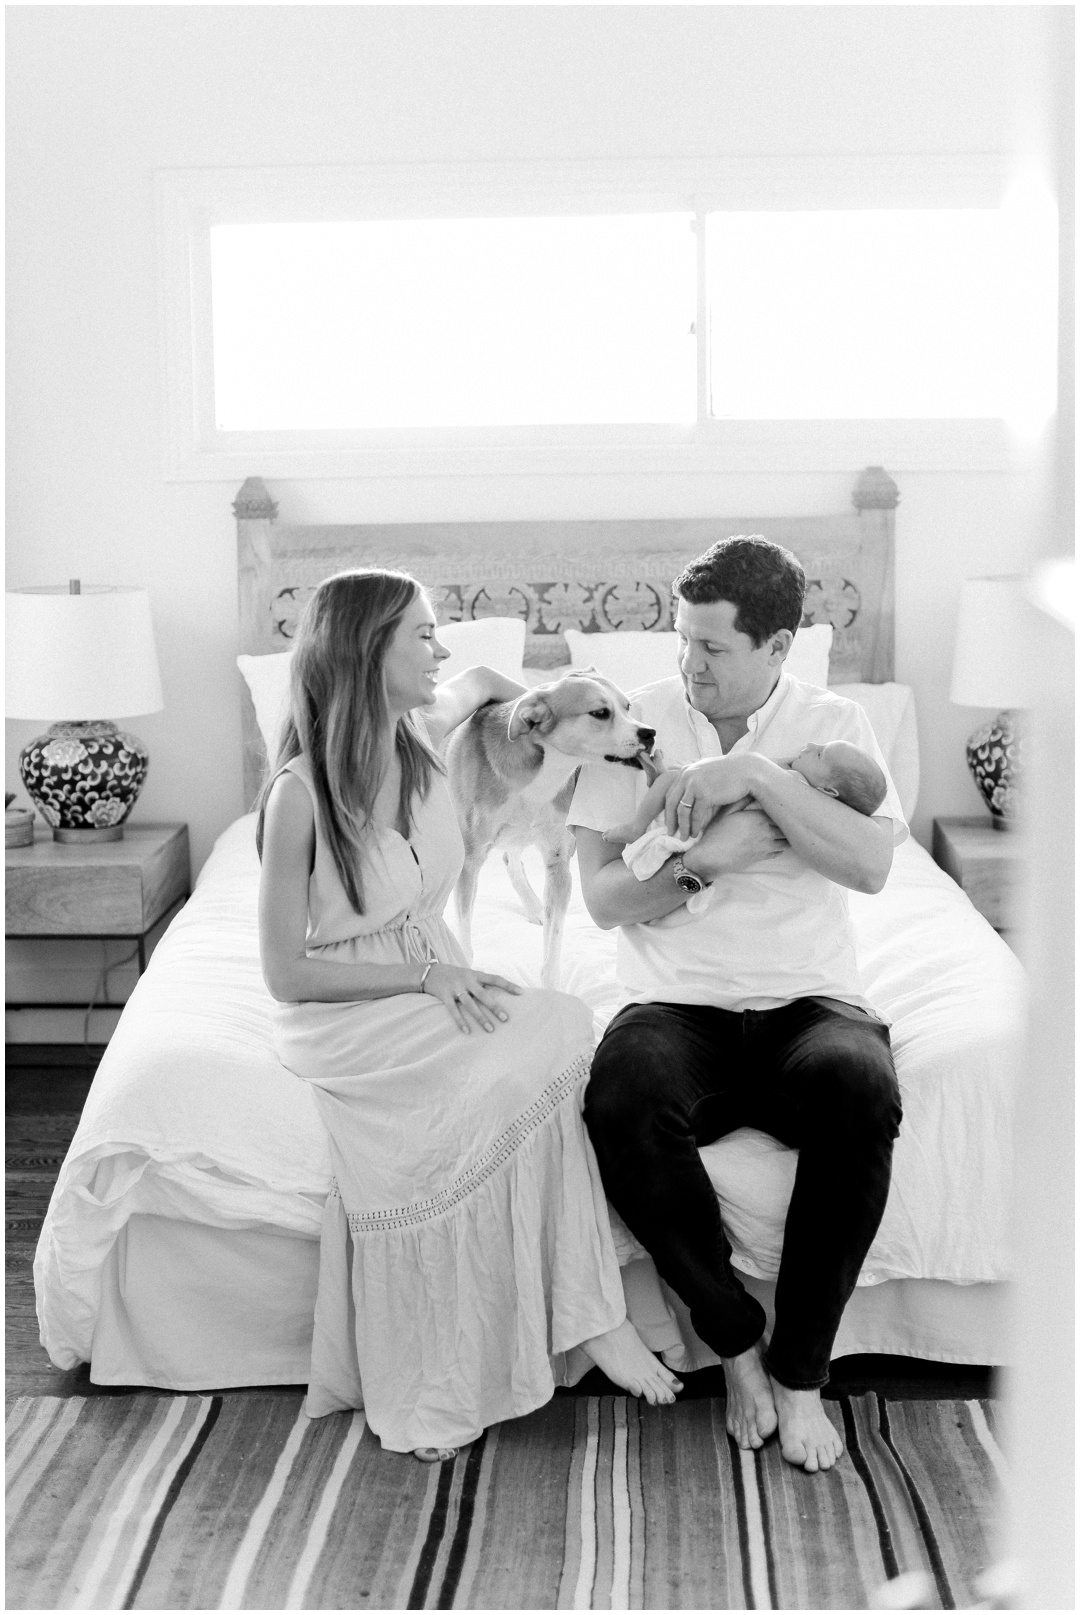 Newport_Beach_Newborn_Photographer_Newport_Beach_Maternity_Photographer_Orange_County_Family_Photographer_Cori_Kleckner_Photography_Huntington_Beach_Photographer__Courtney_Griffiths_Jason_Griffiths__2925.jpg